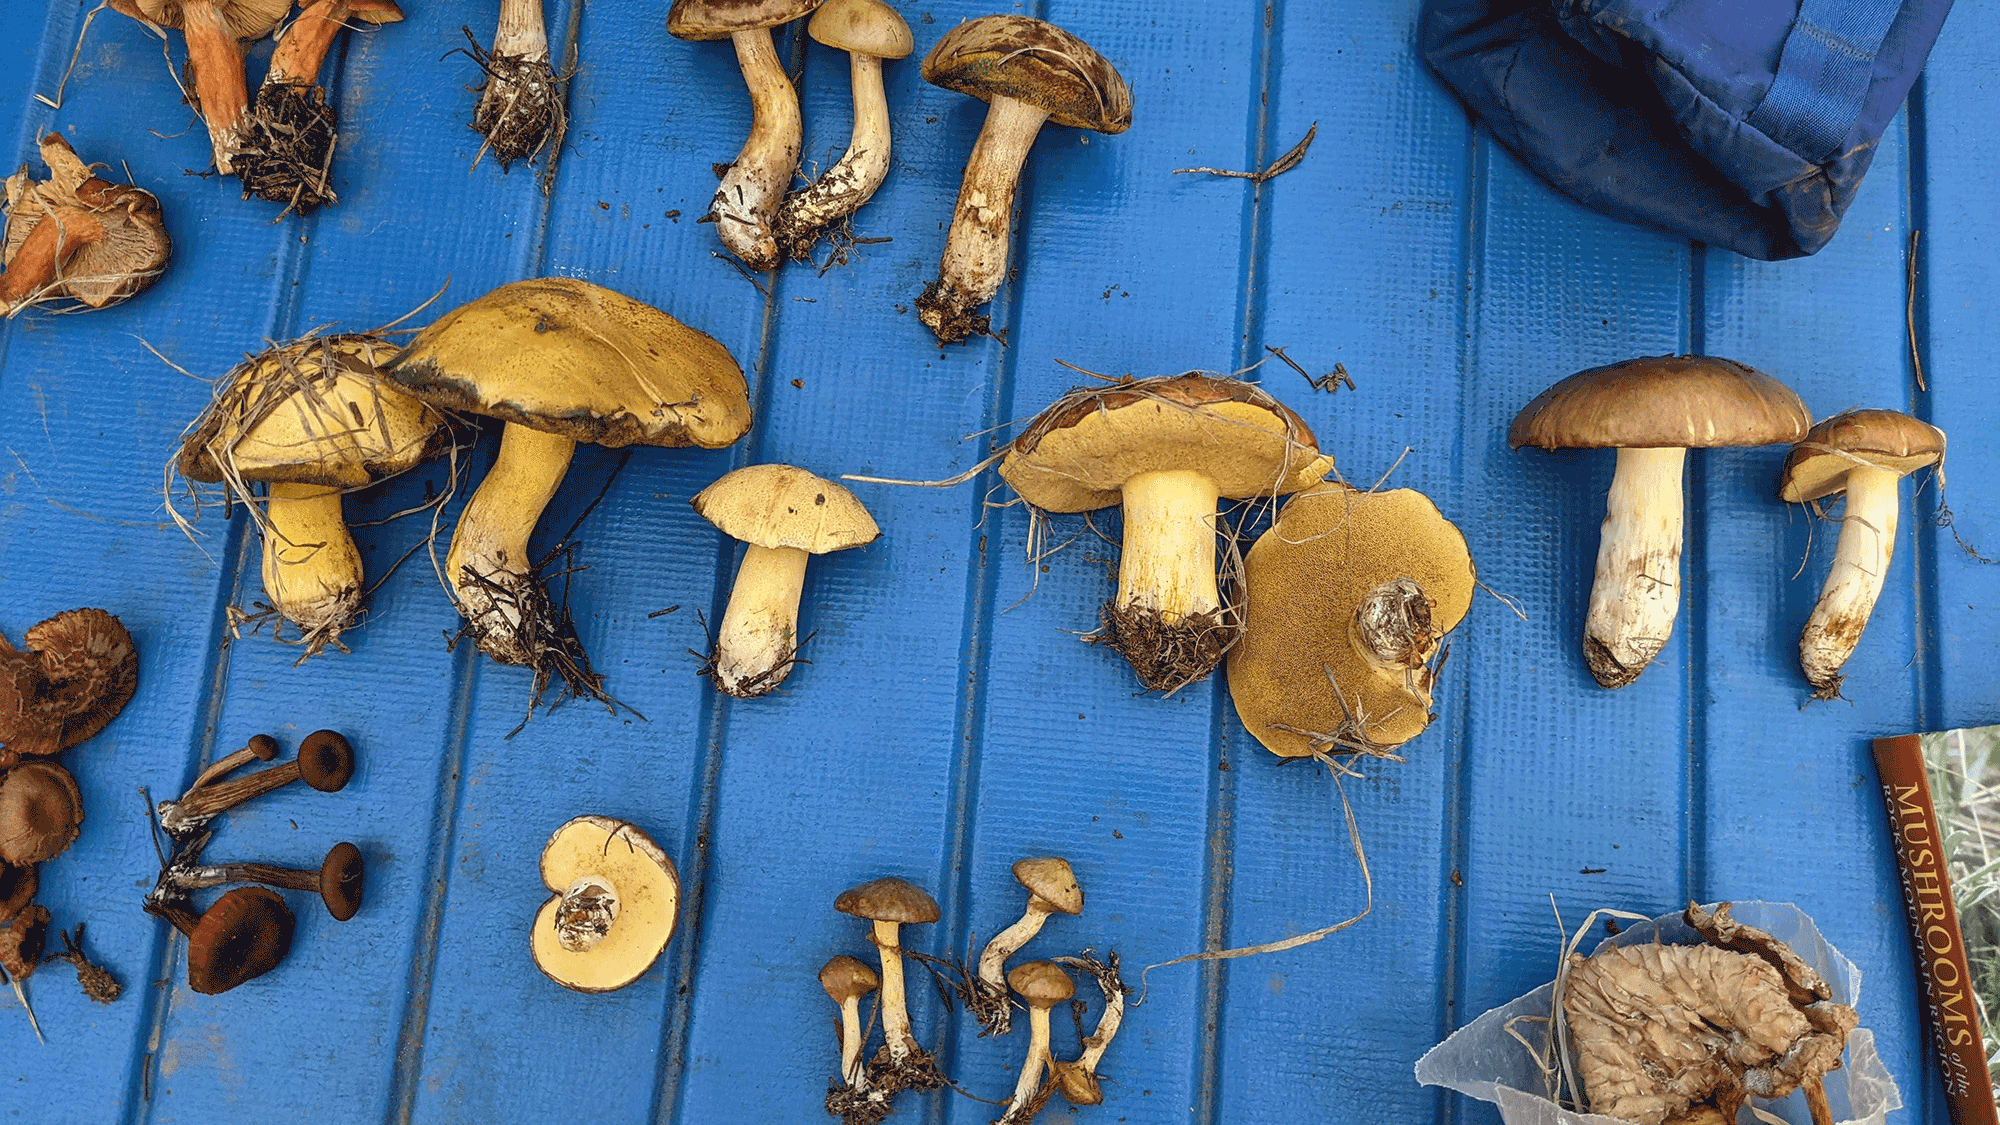 A bunch of mushroom layed out on a blue picnic table.